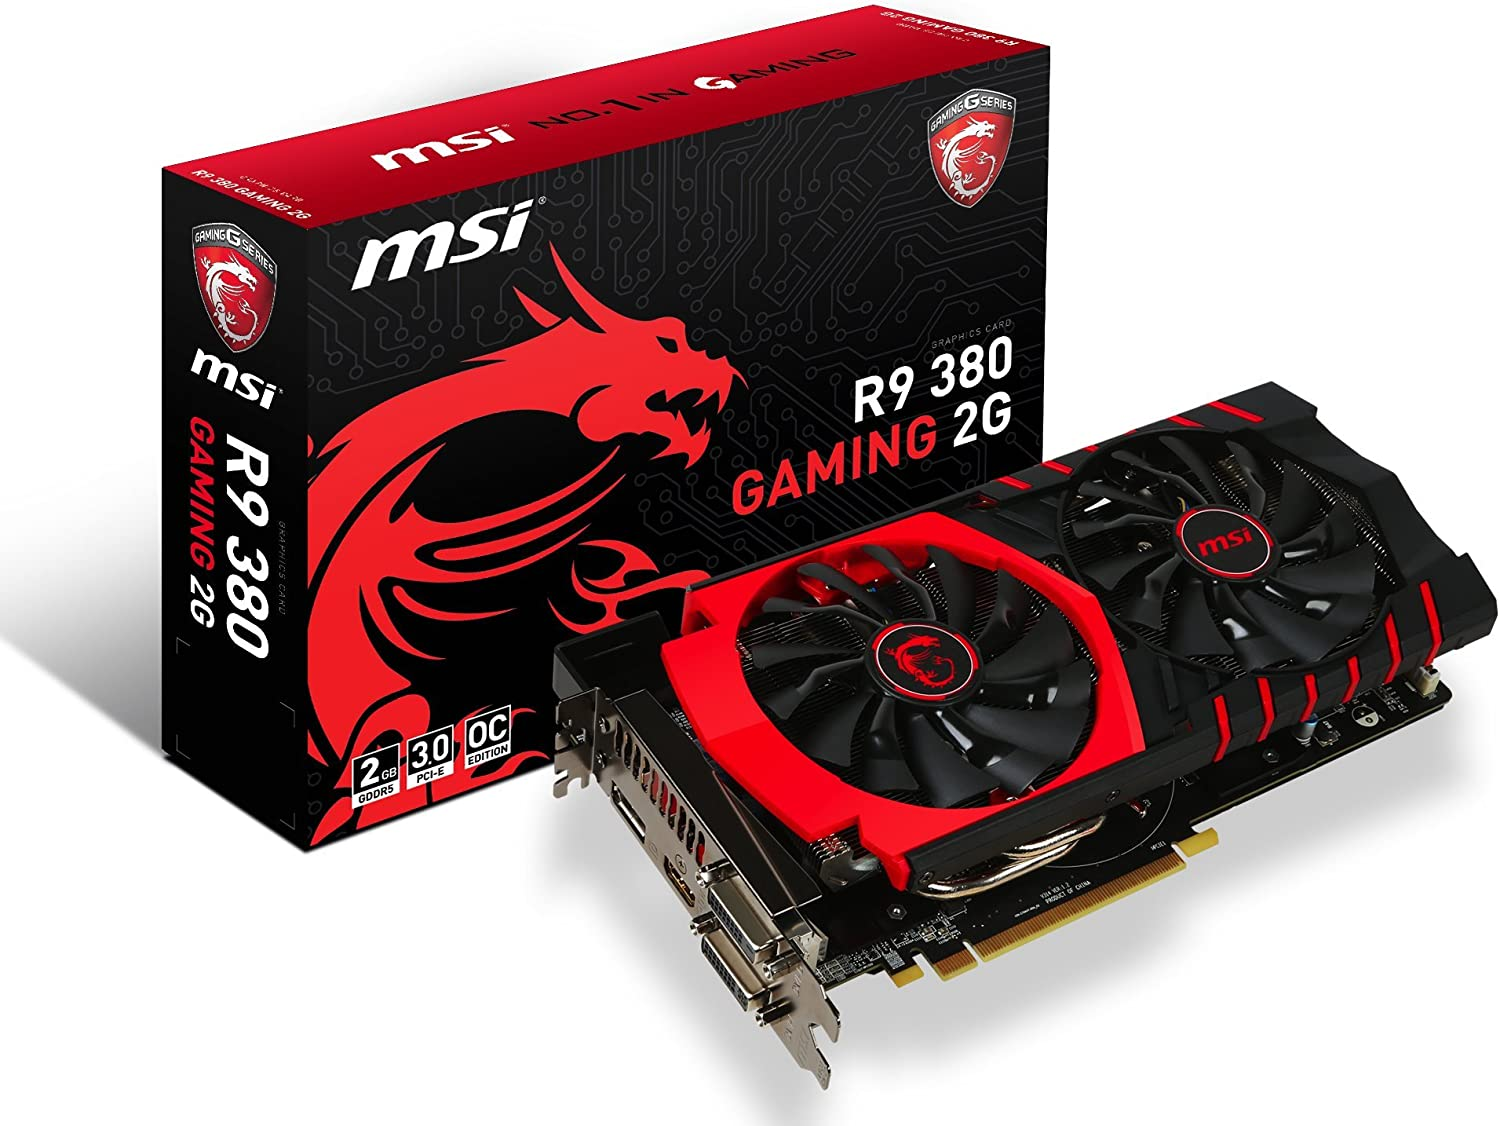 MSI R9 380 GAMING 2G Graphics Card